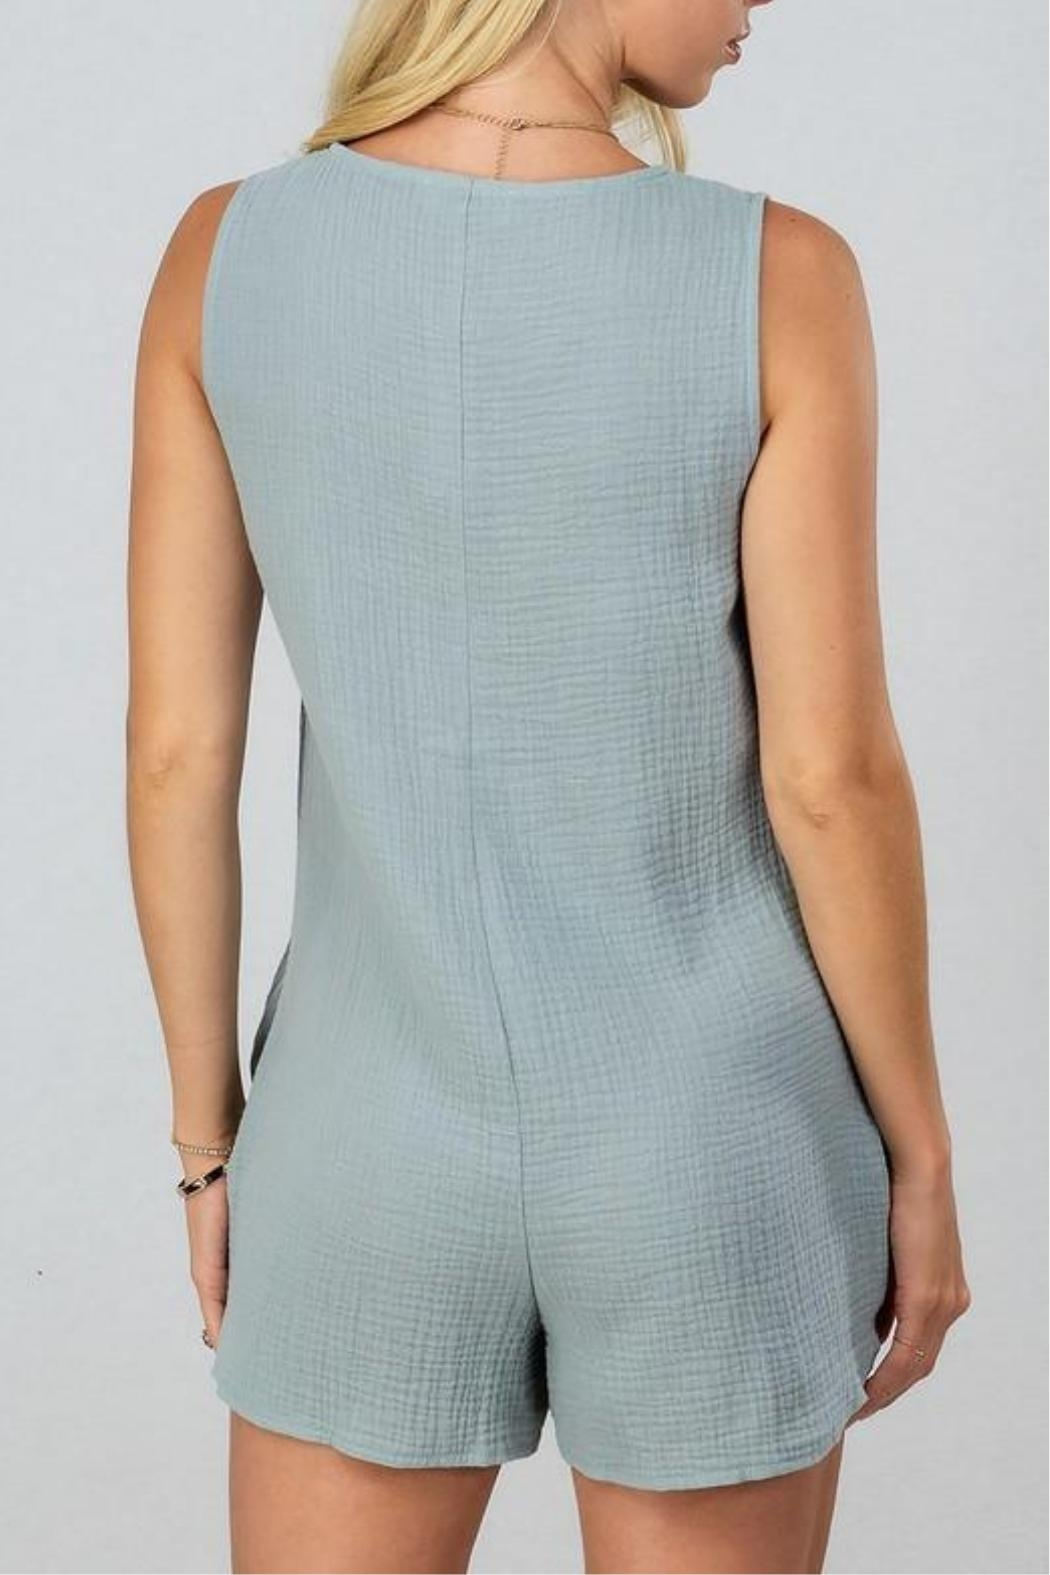 AKAIV Gauzy Button-Down Romper - Front Full Image